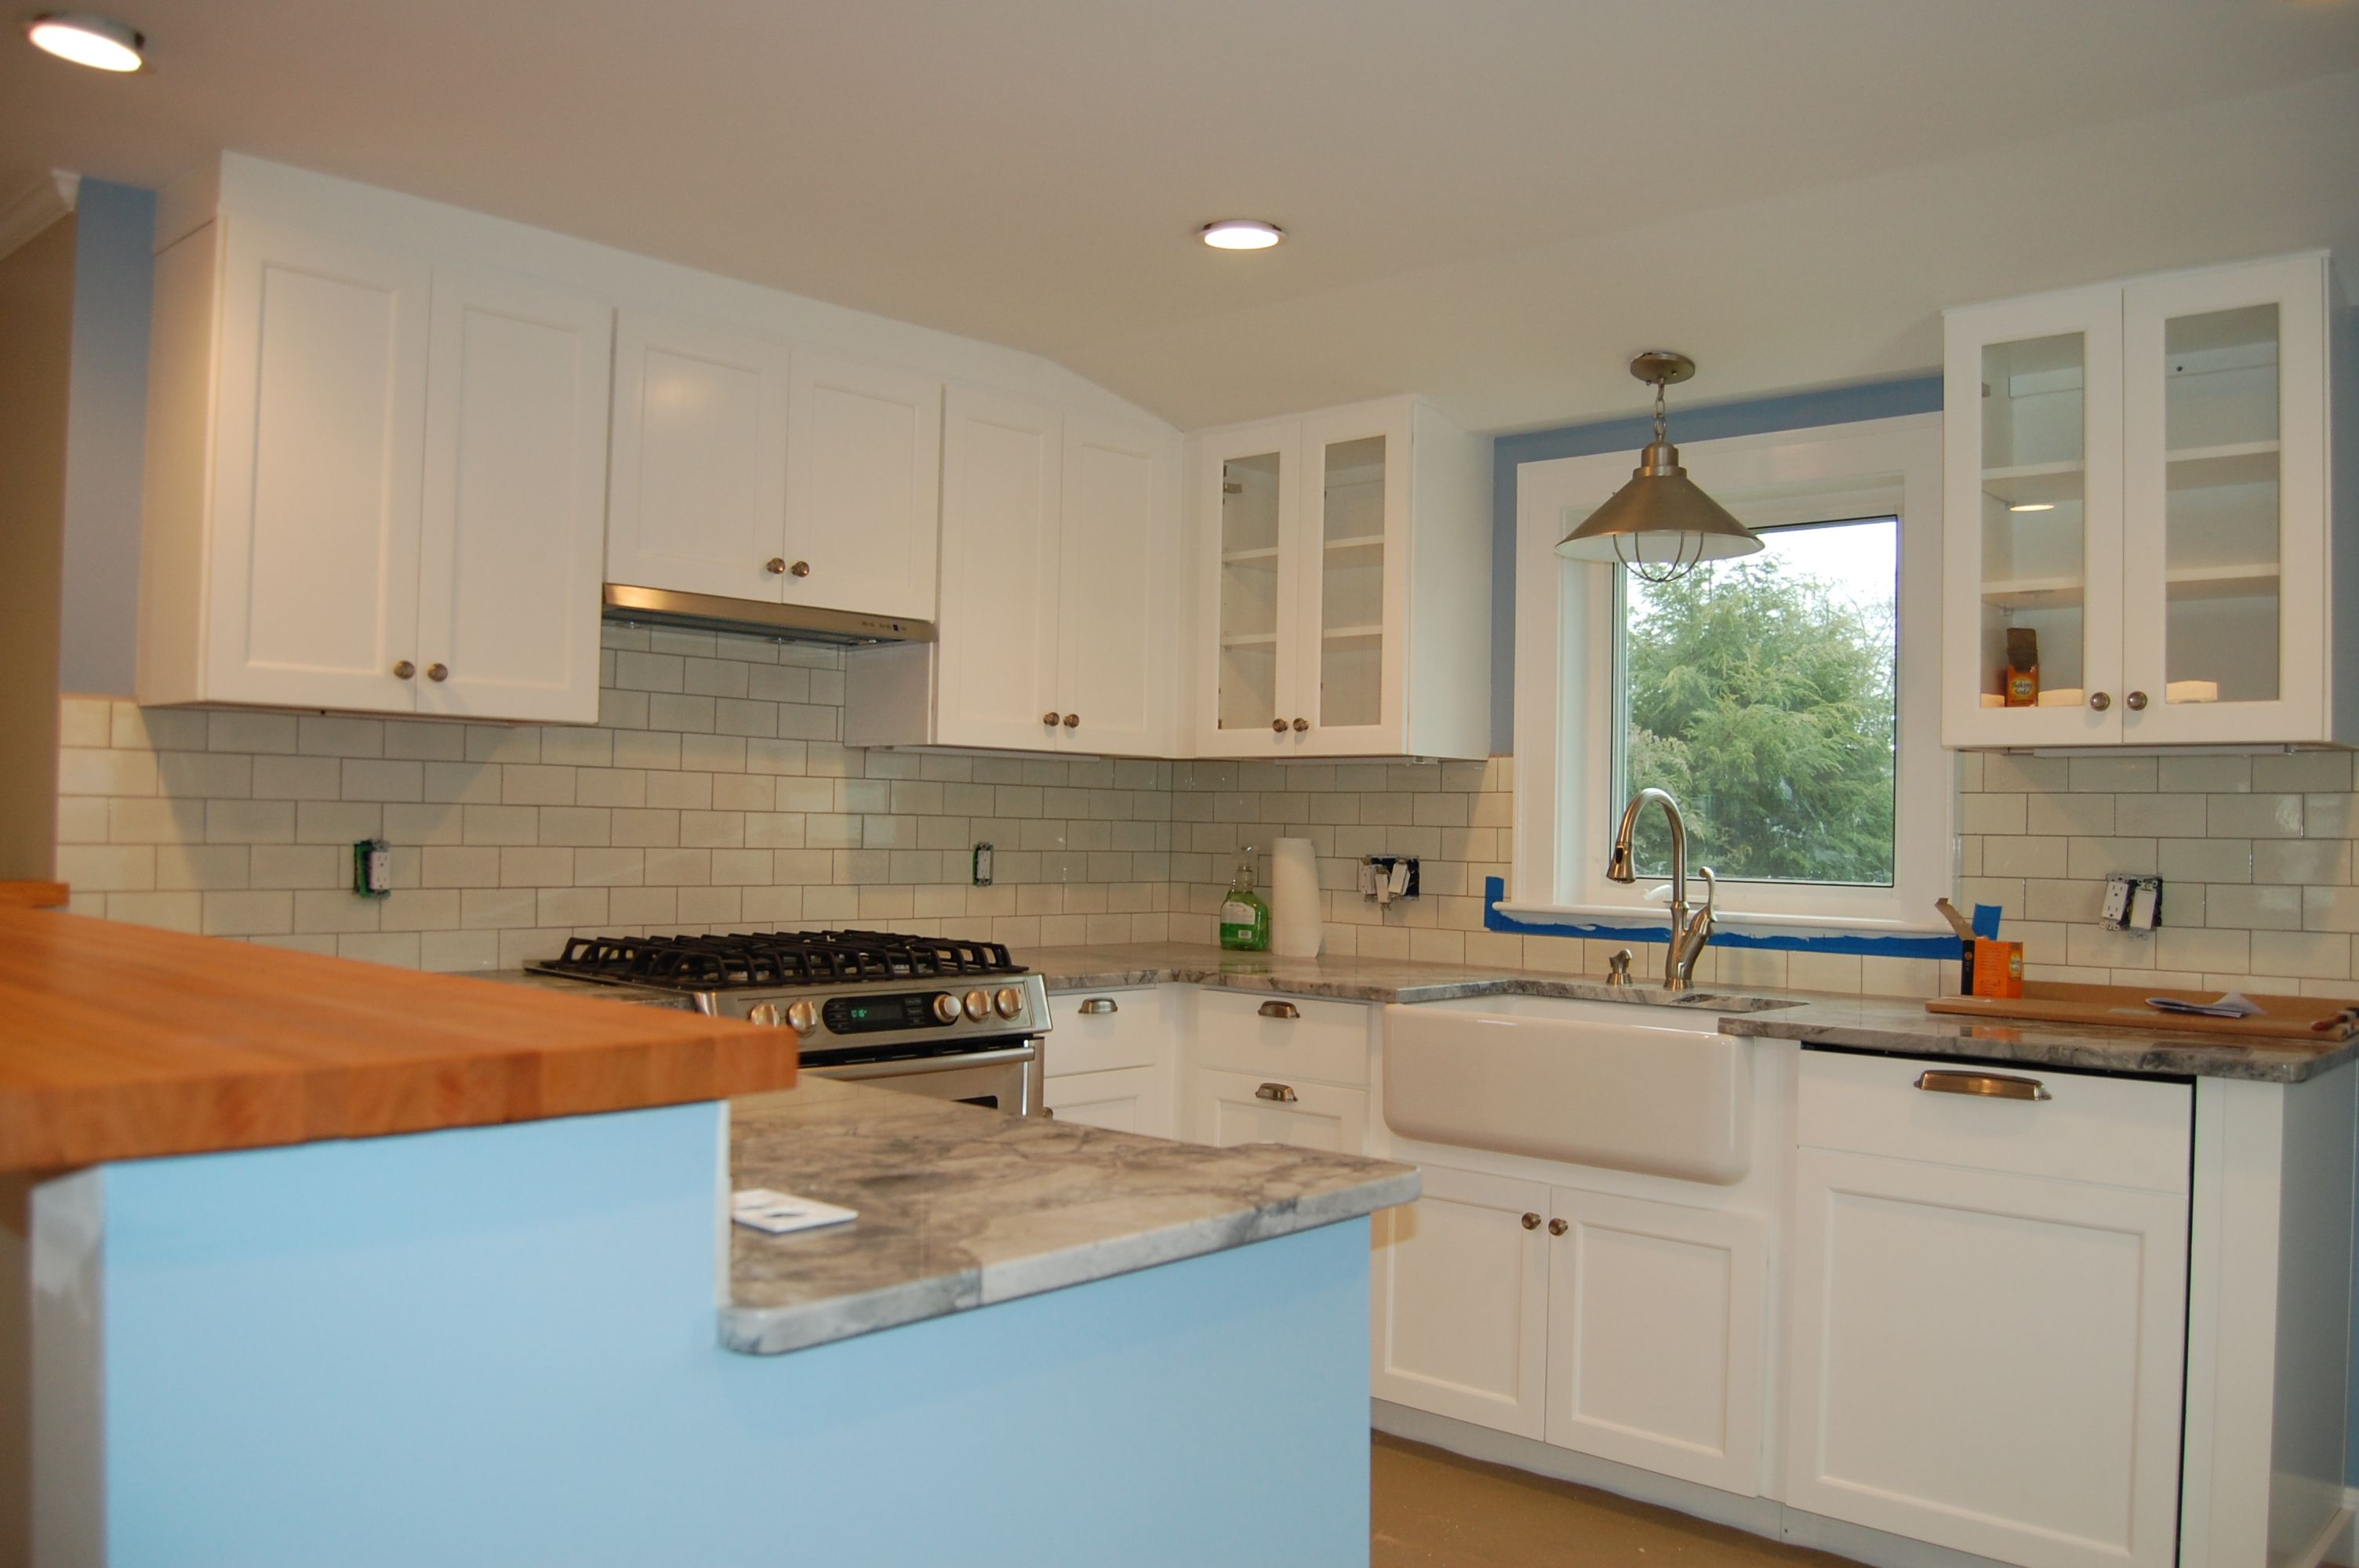 Cape Cod Kitchen Design Outdoor Islands Bgb Projects Renovation Completed On 1940s